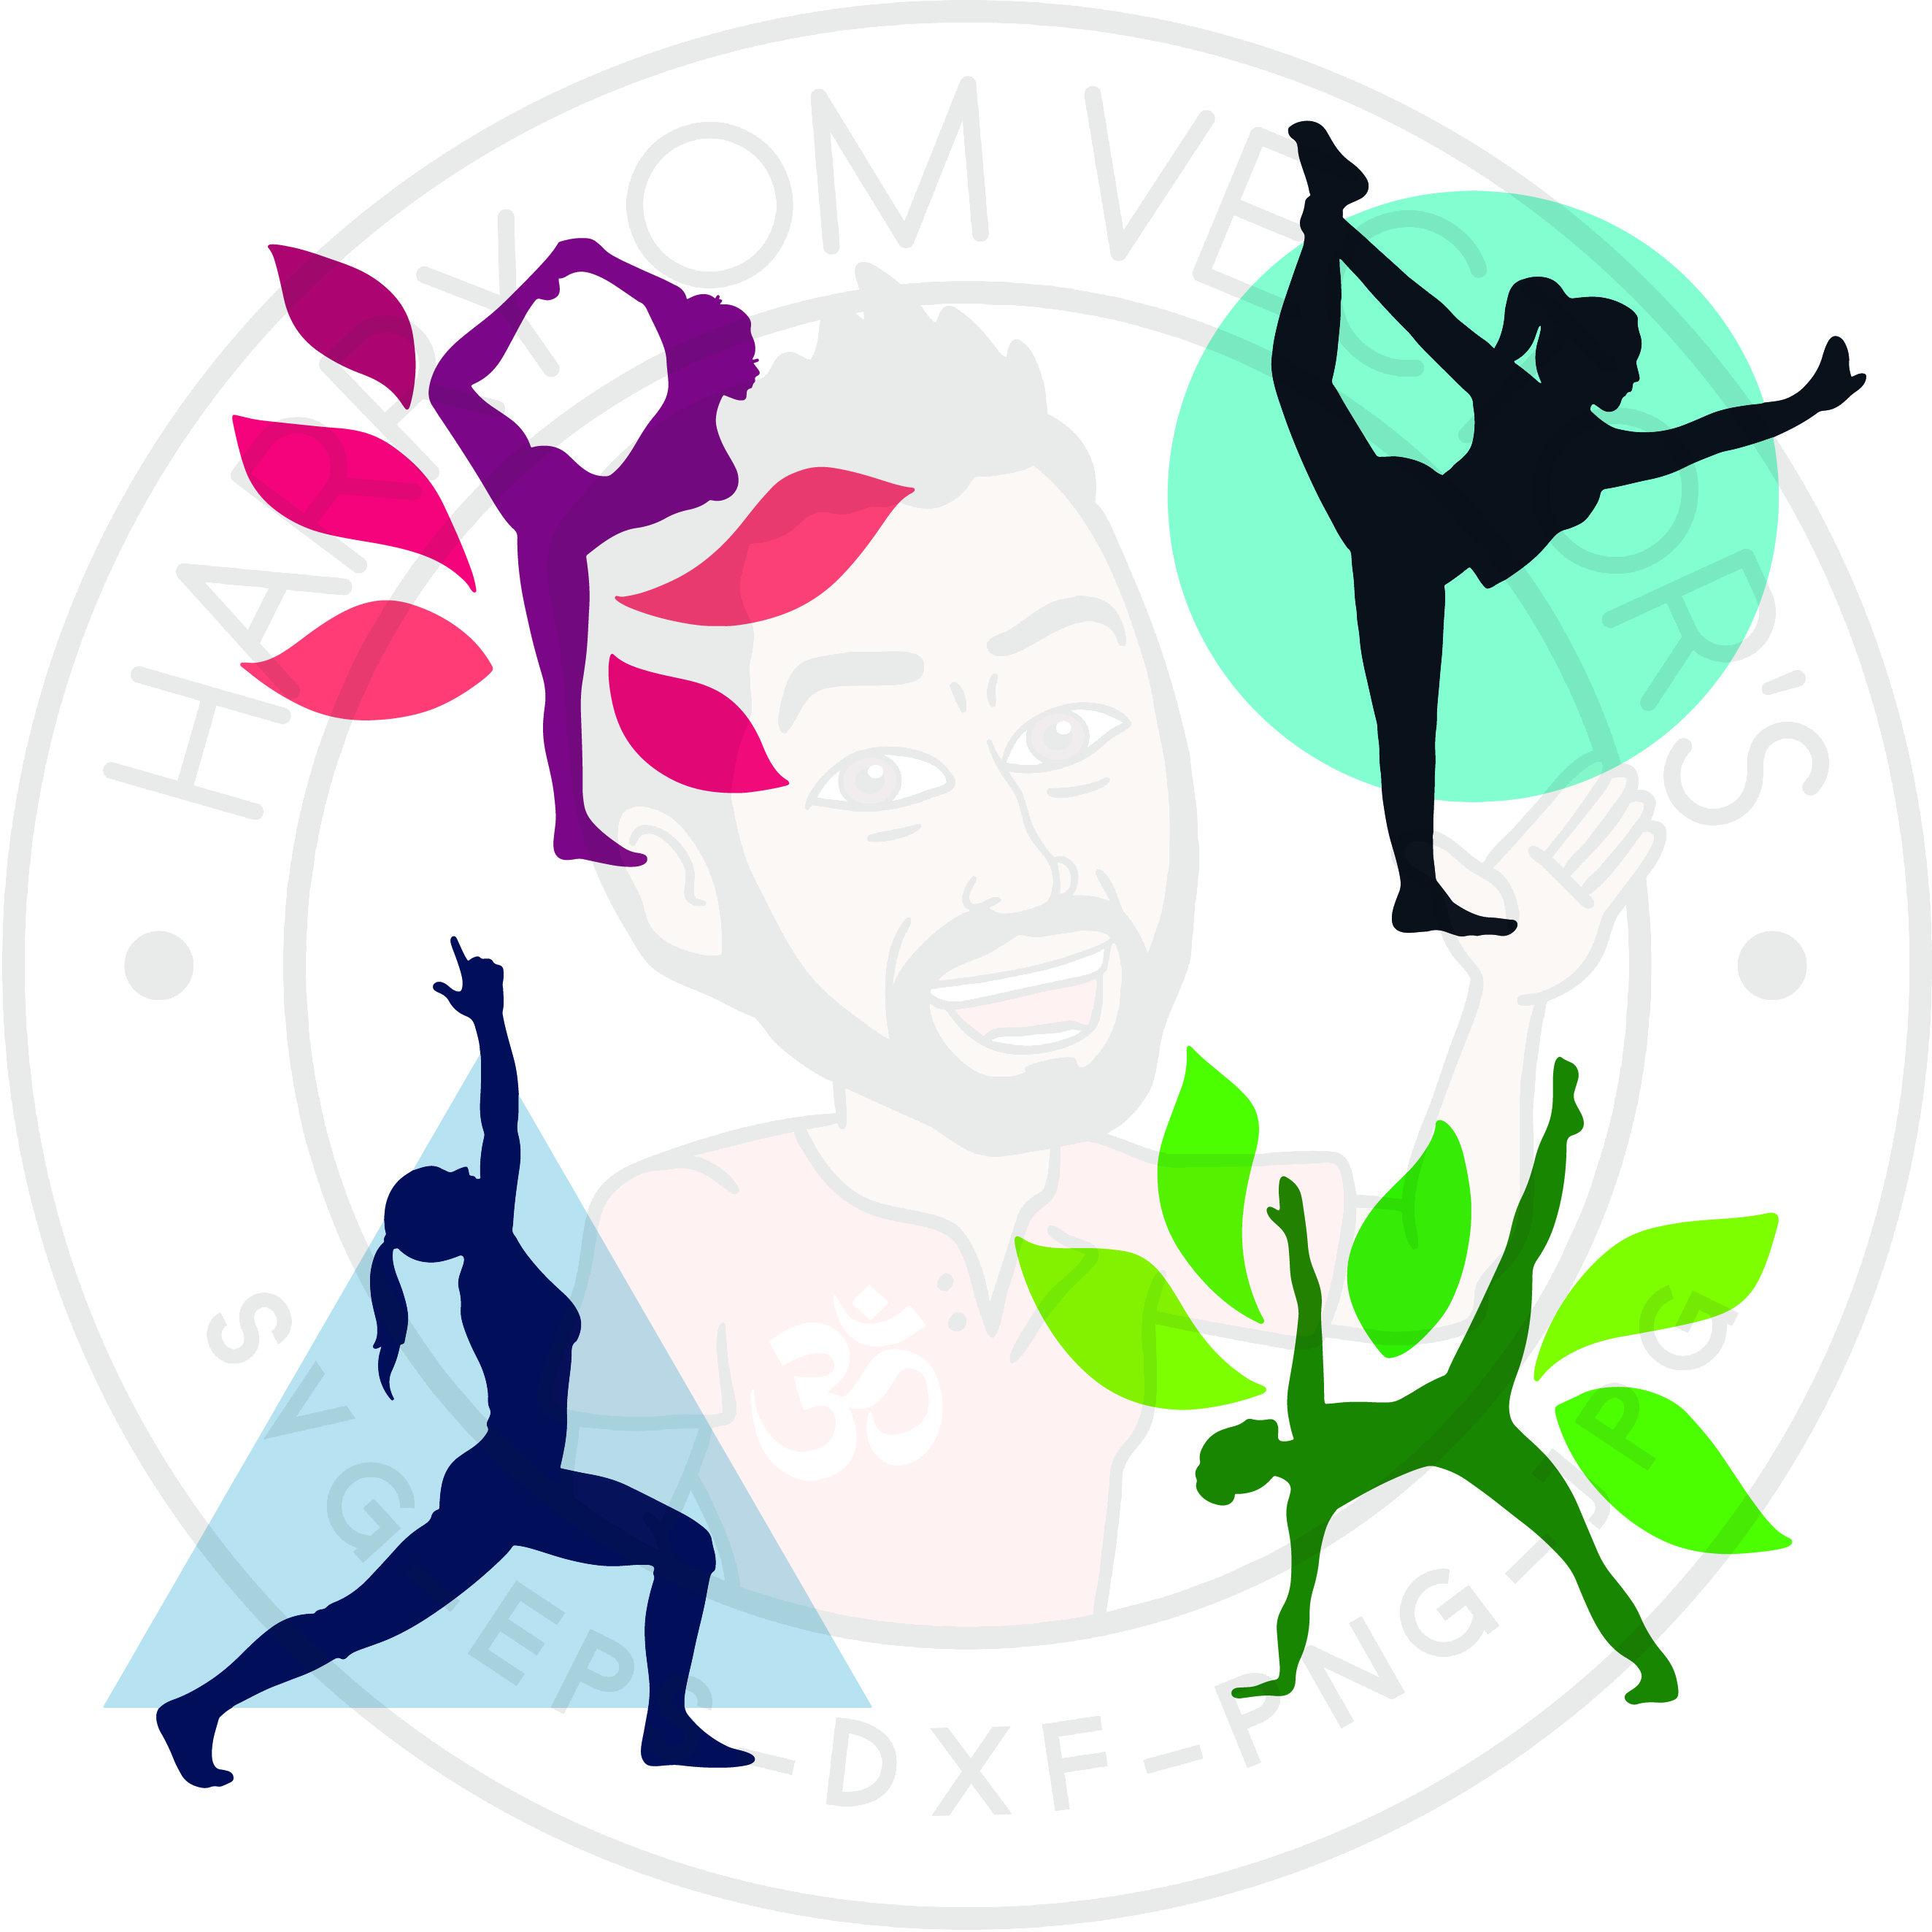 2647x2647 Chakra Vectors, Svg Dxf For Silhouette Cameo Or Cricut, Yoga Pose